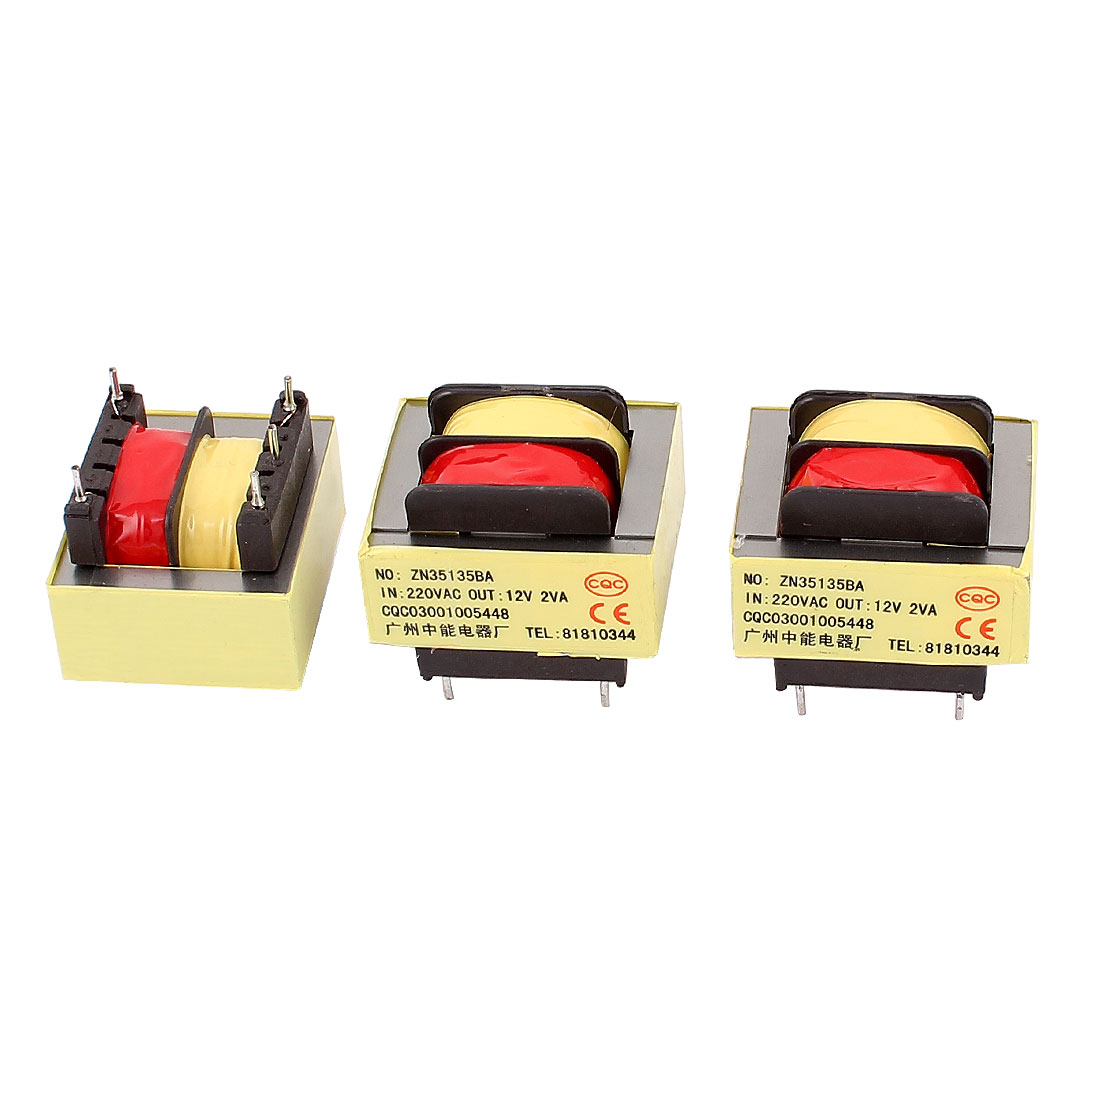 3Pcs 220V Input 12V 2VA Output Yellow Red Ferrite Core Power Transformer w 5 Terminals